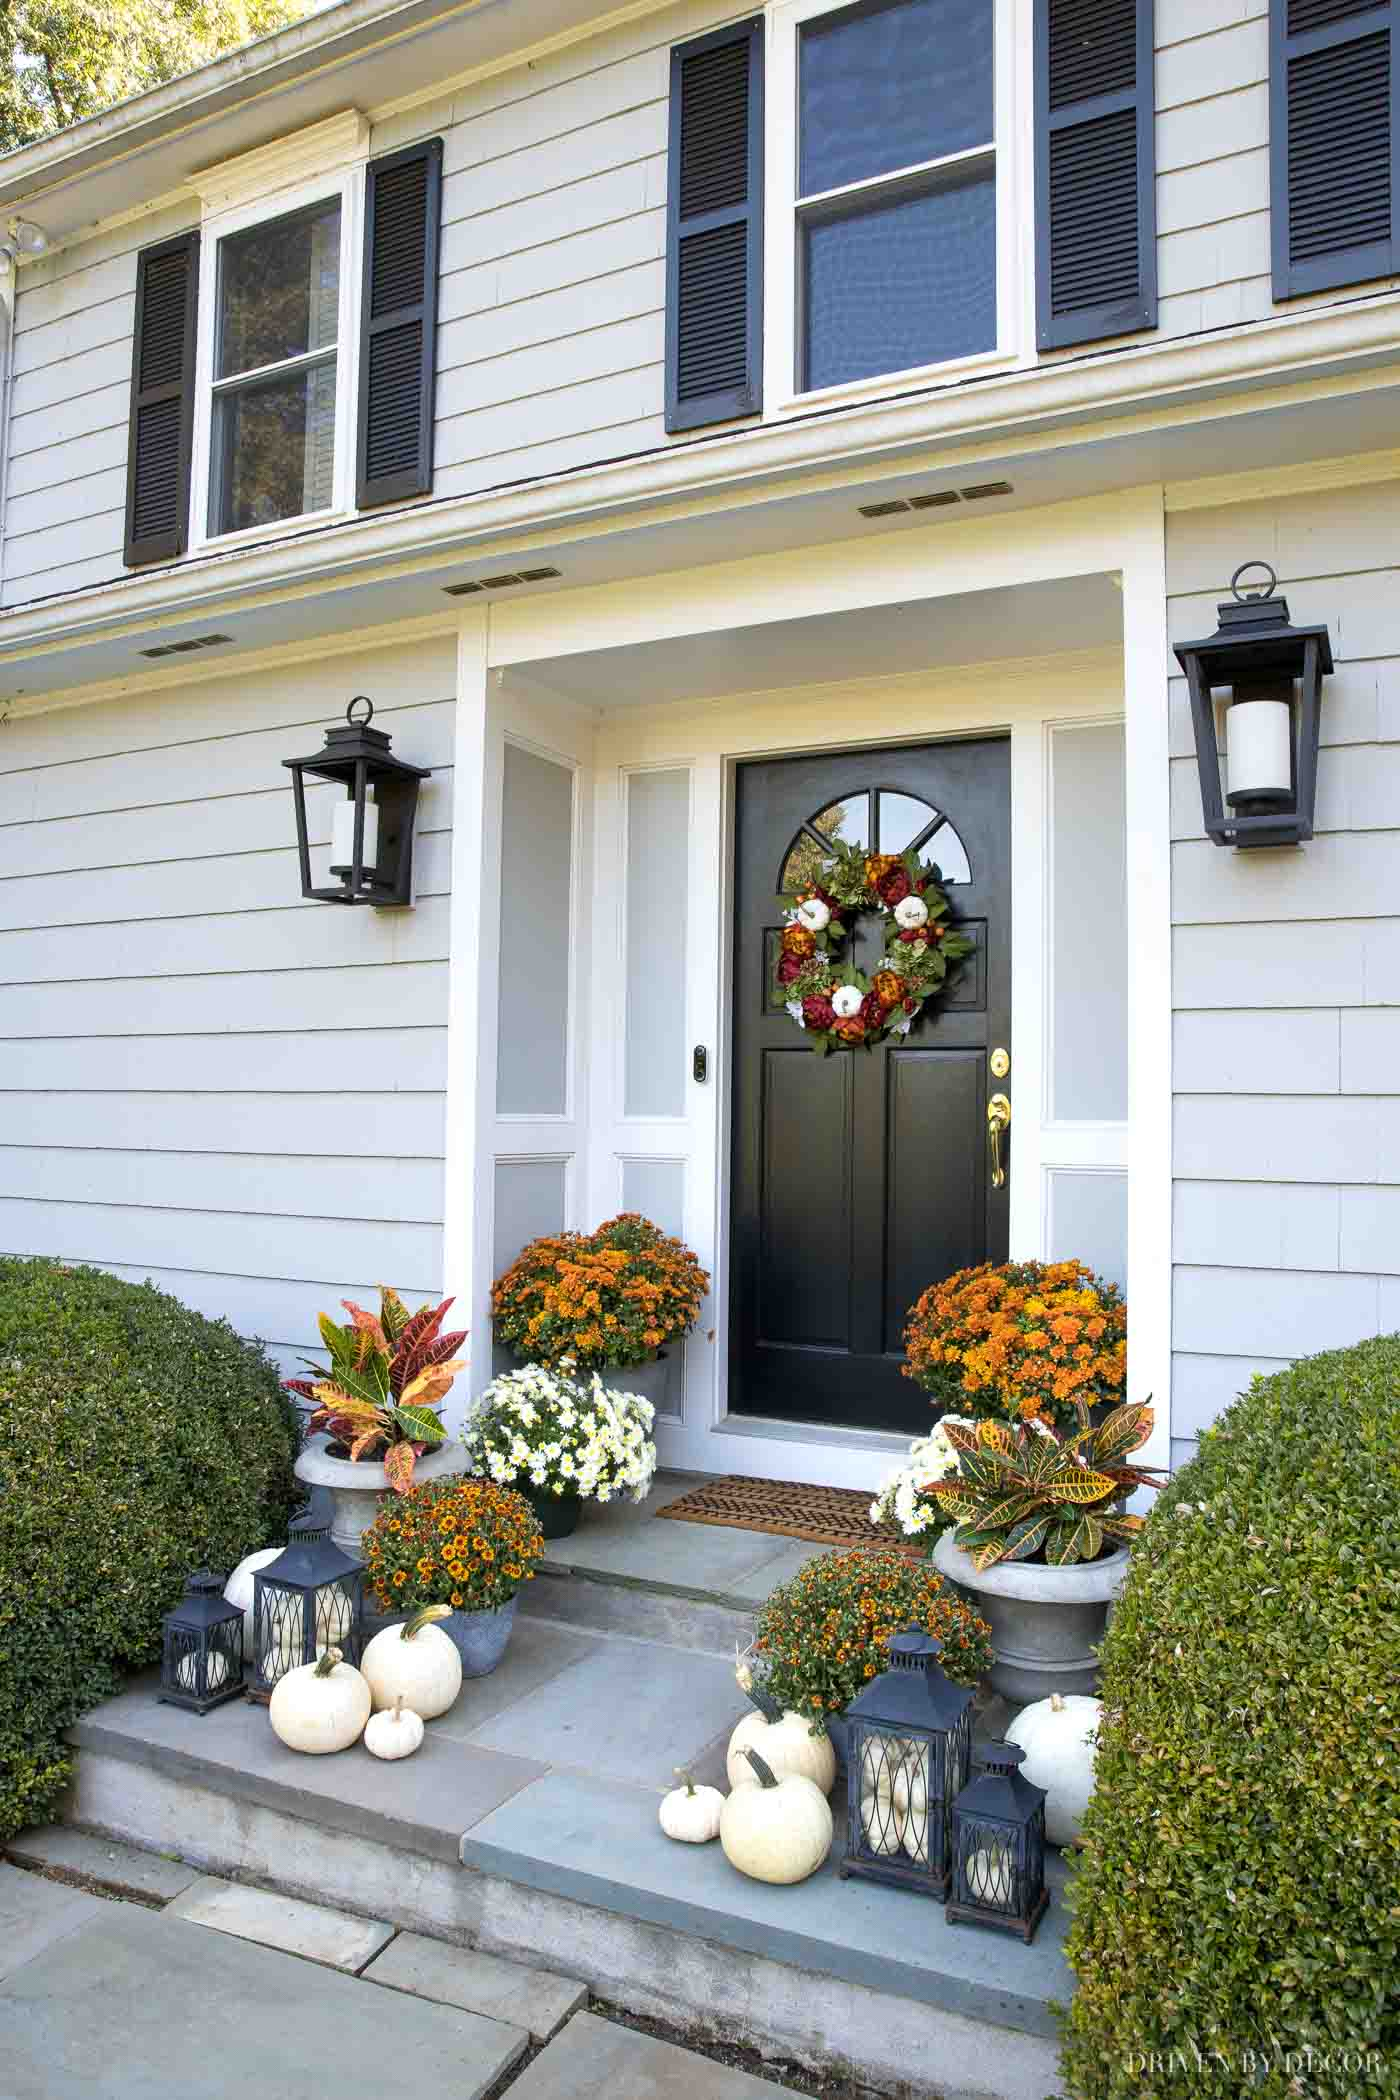 All the details on our fall front porch decor including the pumpkins in our black lanterns, mums, beautiful fall wreath, and more!